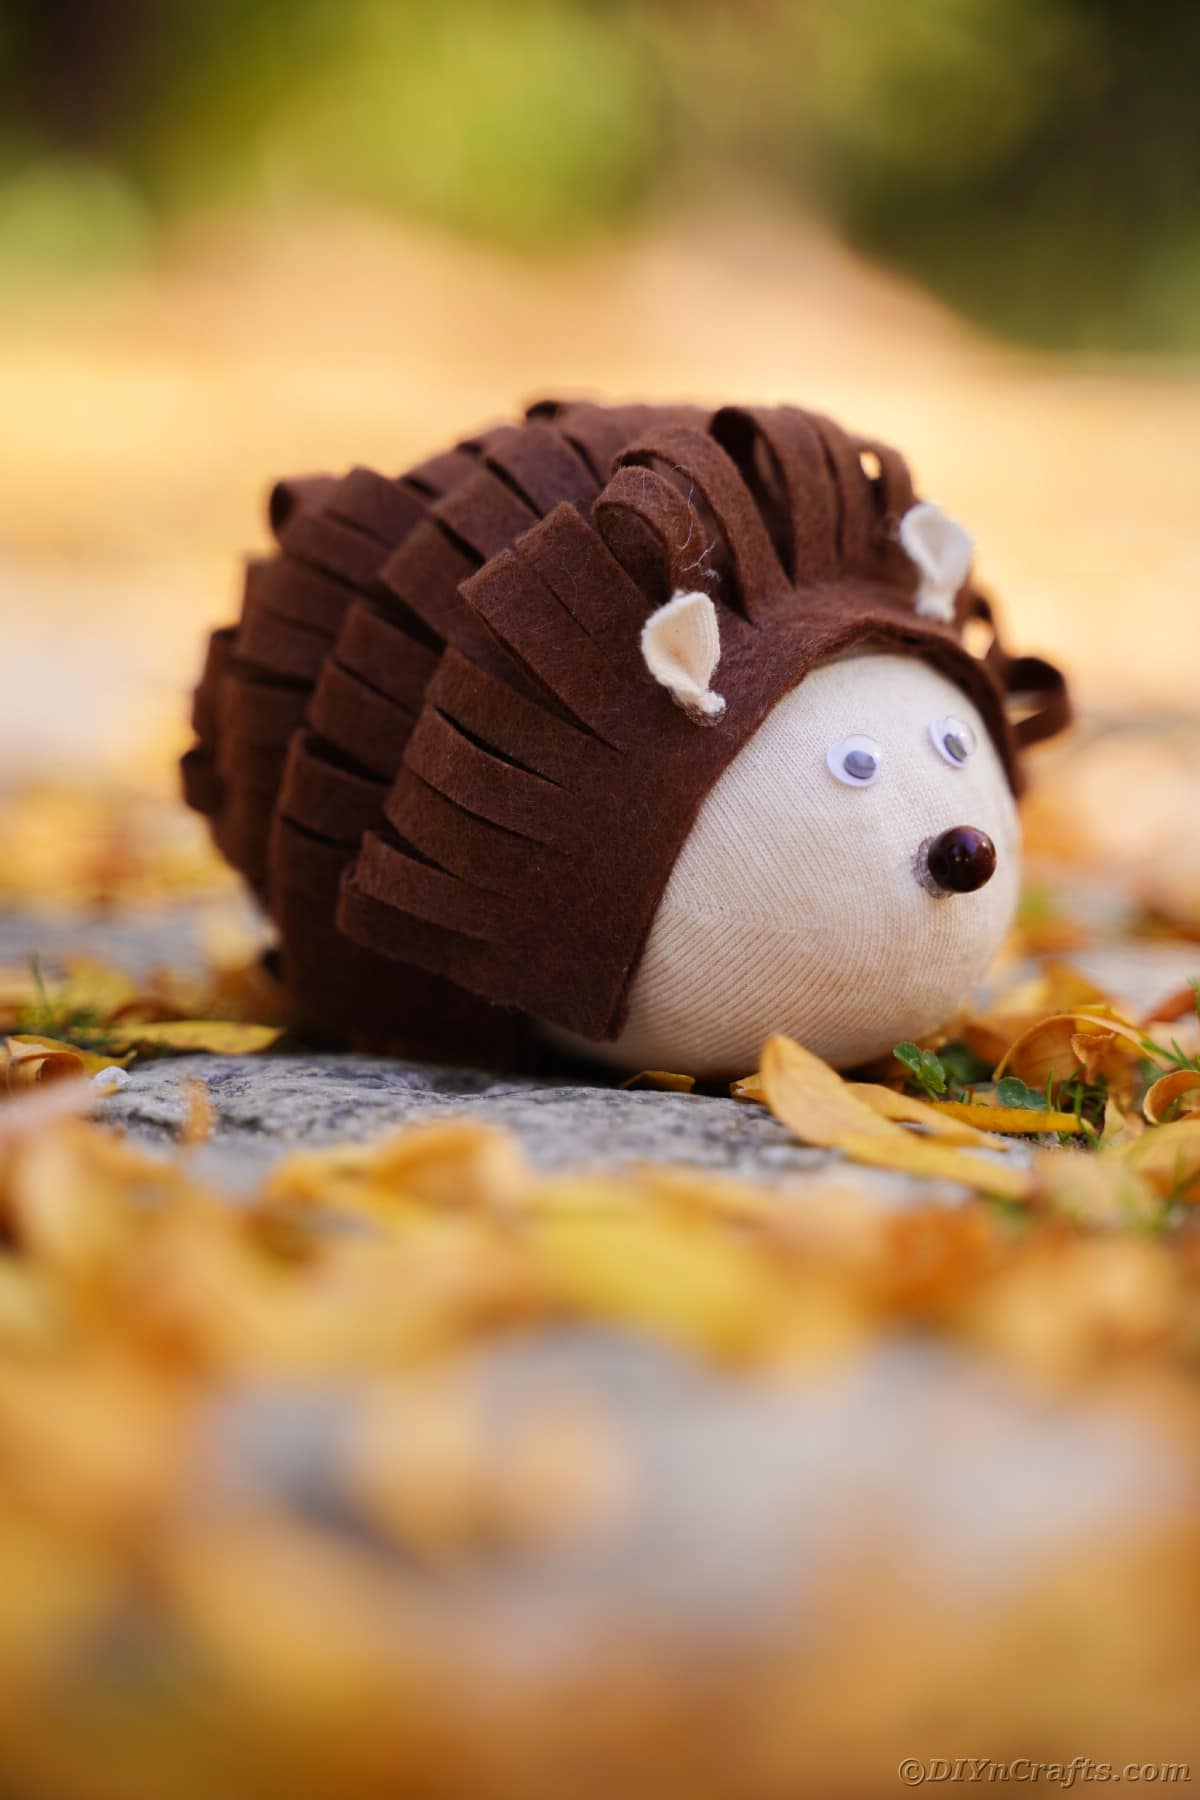 Stuffed toy hedgehog on ground outside by leaves